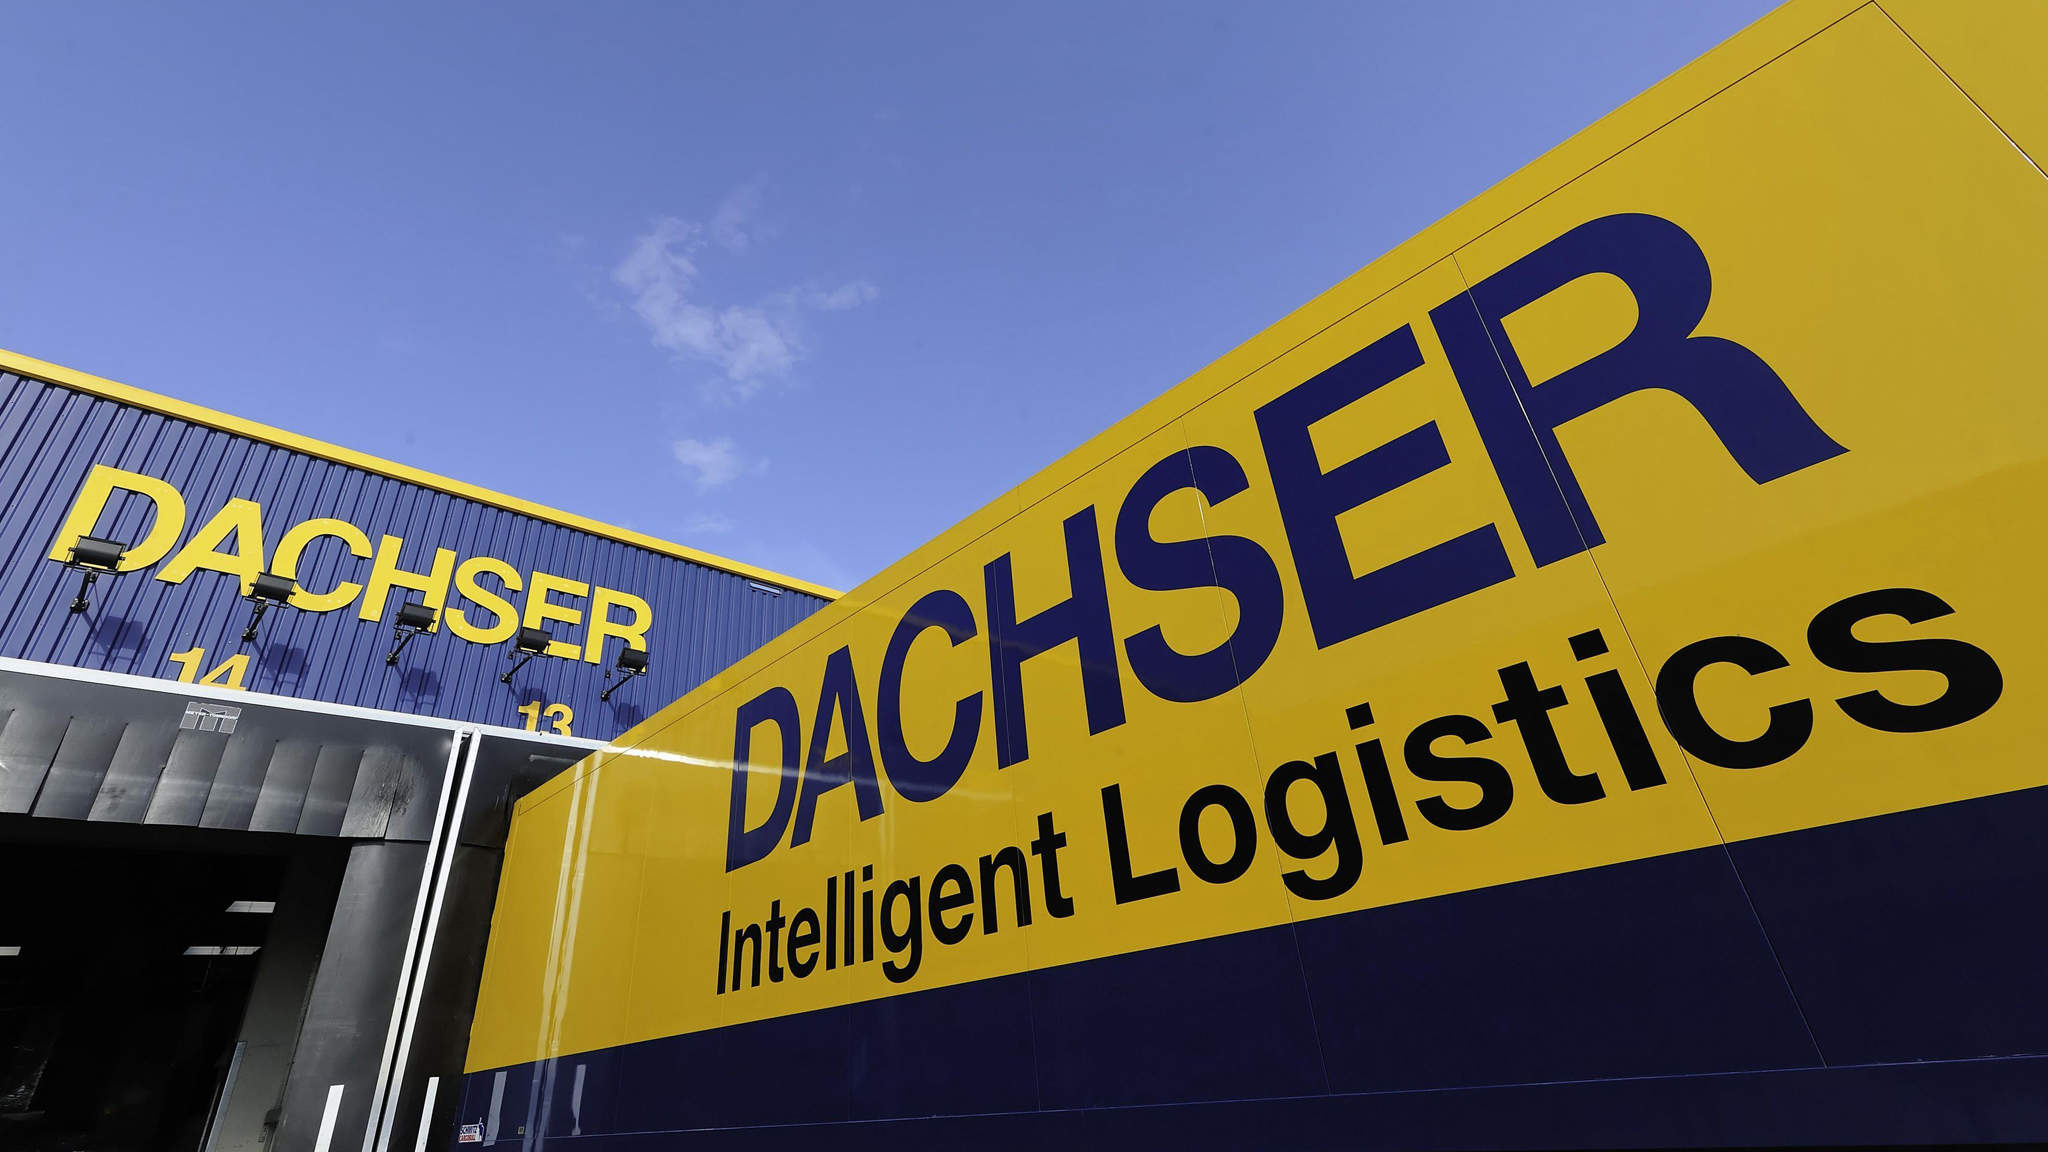 DACHSER European Logistics